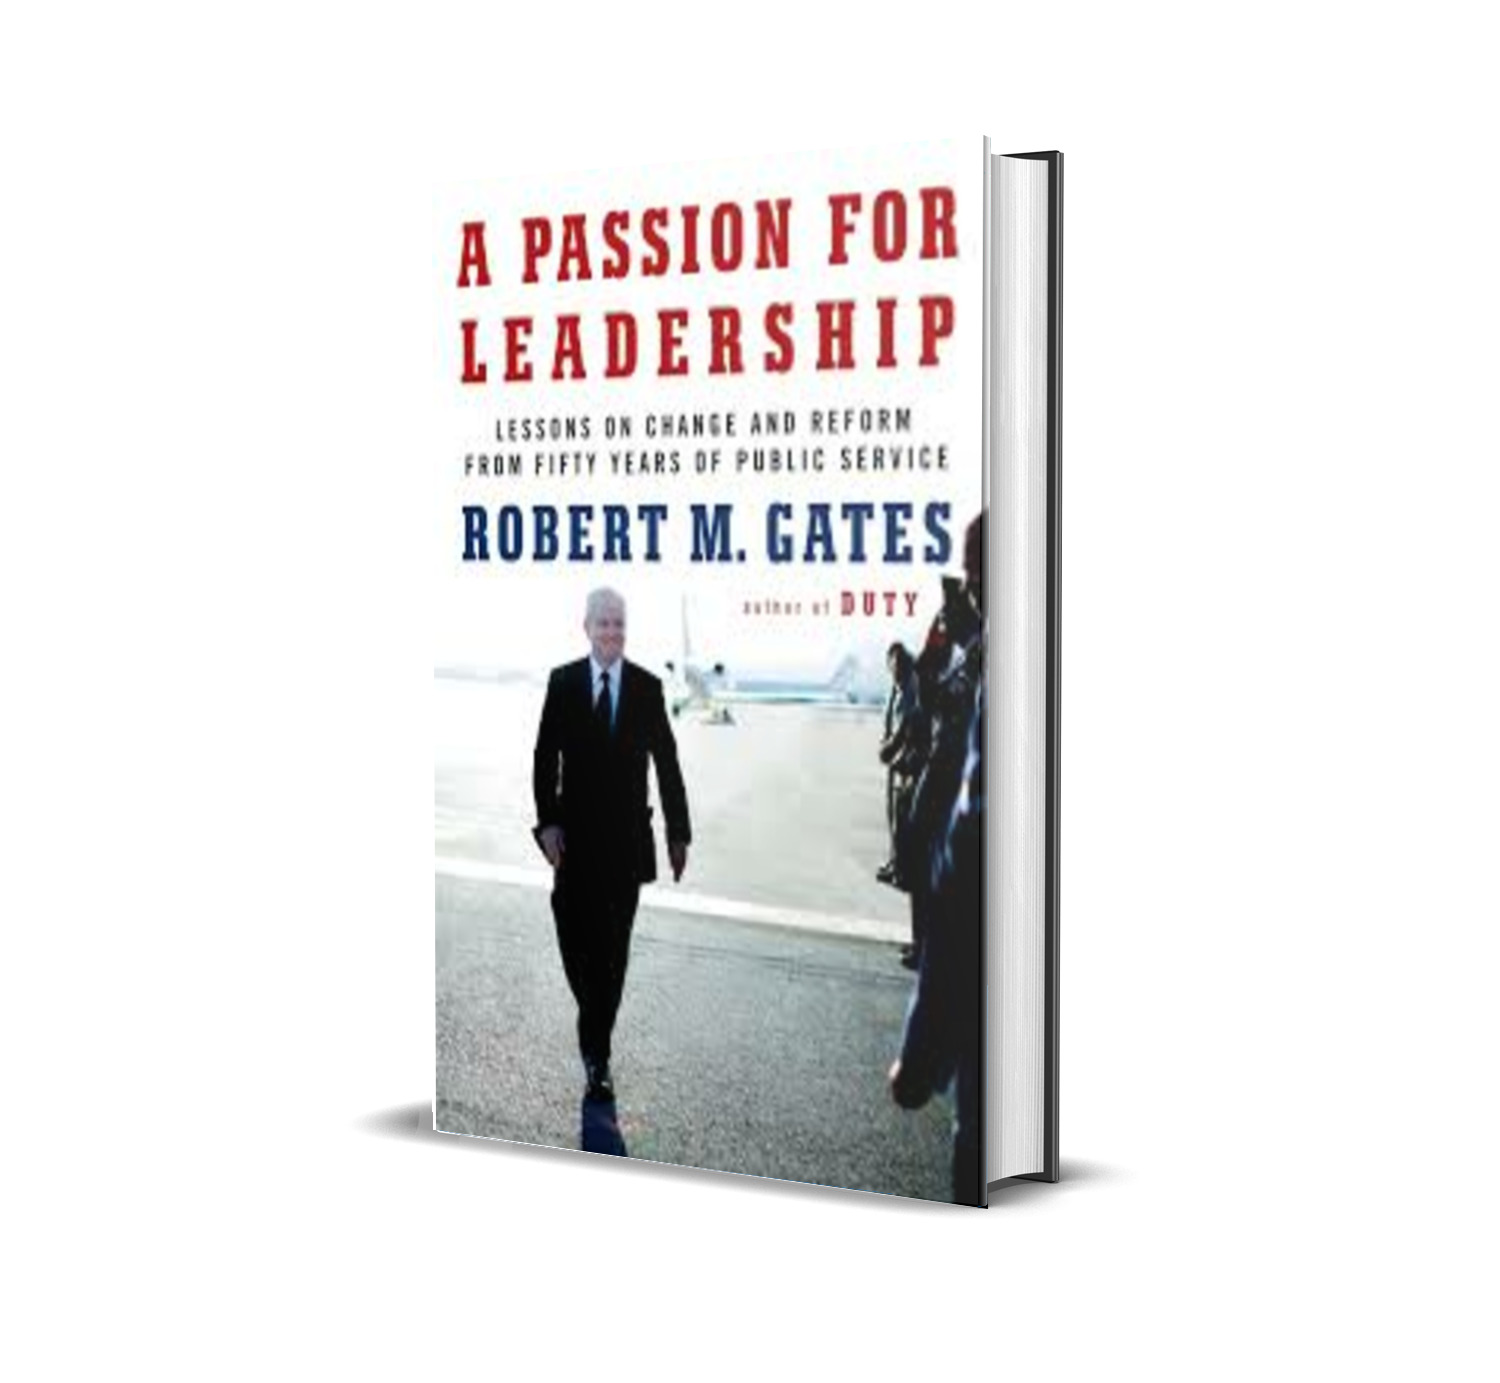 A Passion for Leadership - Robert M Gates